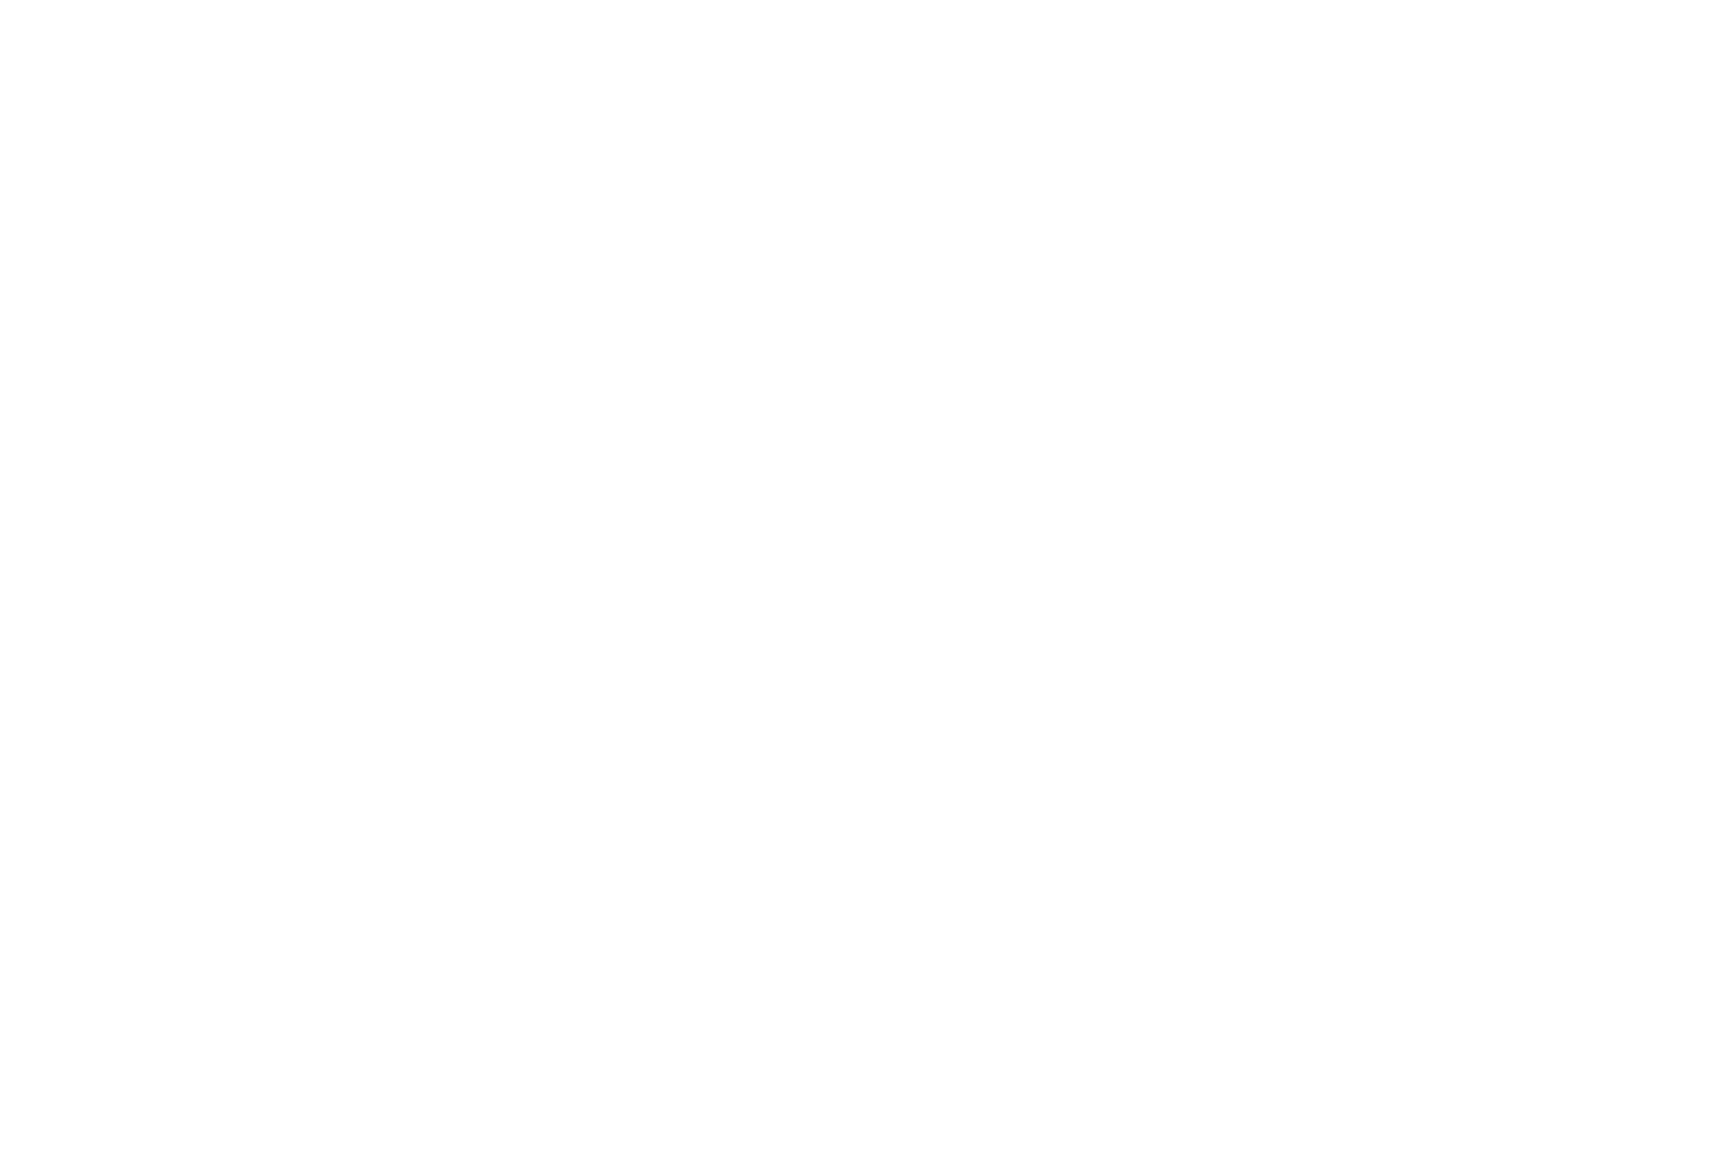 FINALIST - Kosice International Monthly Film Festival - 2020